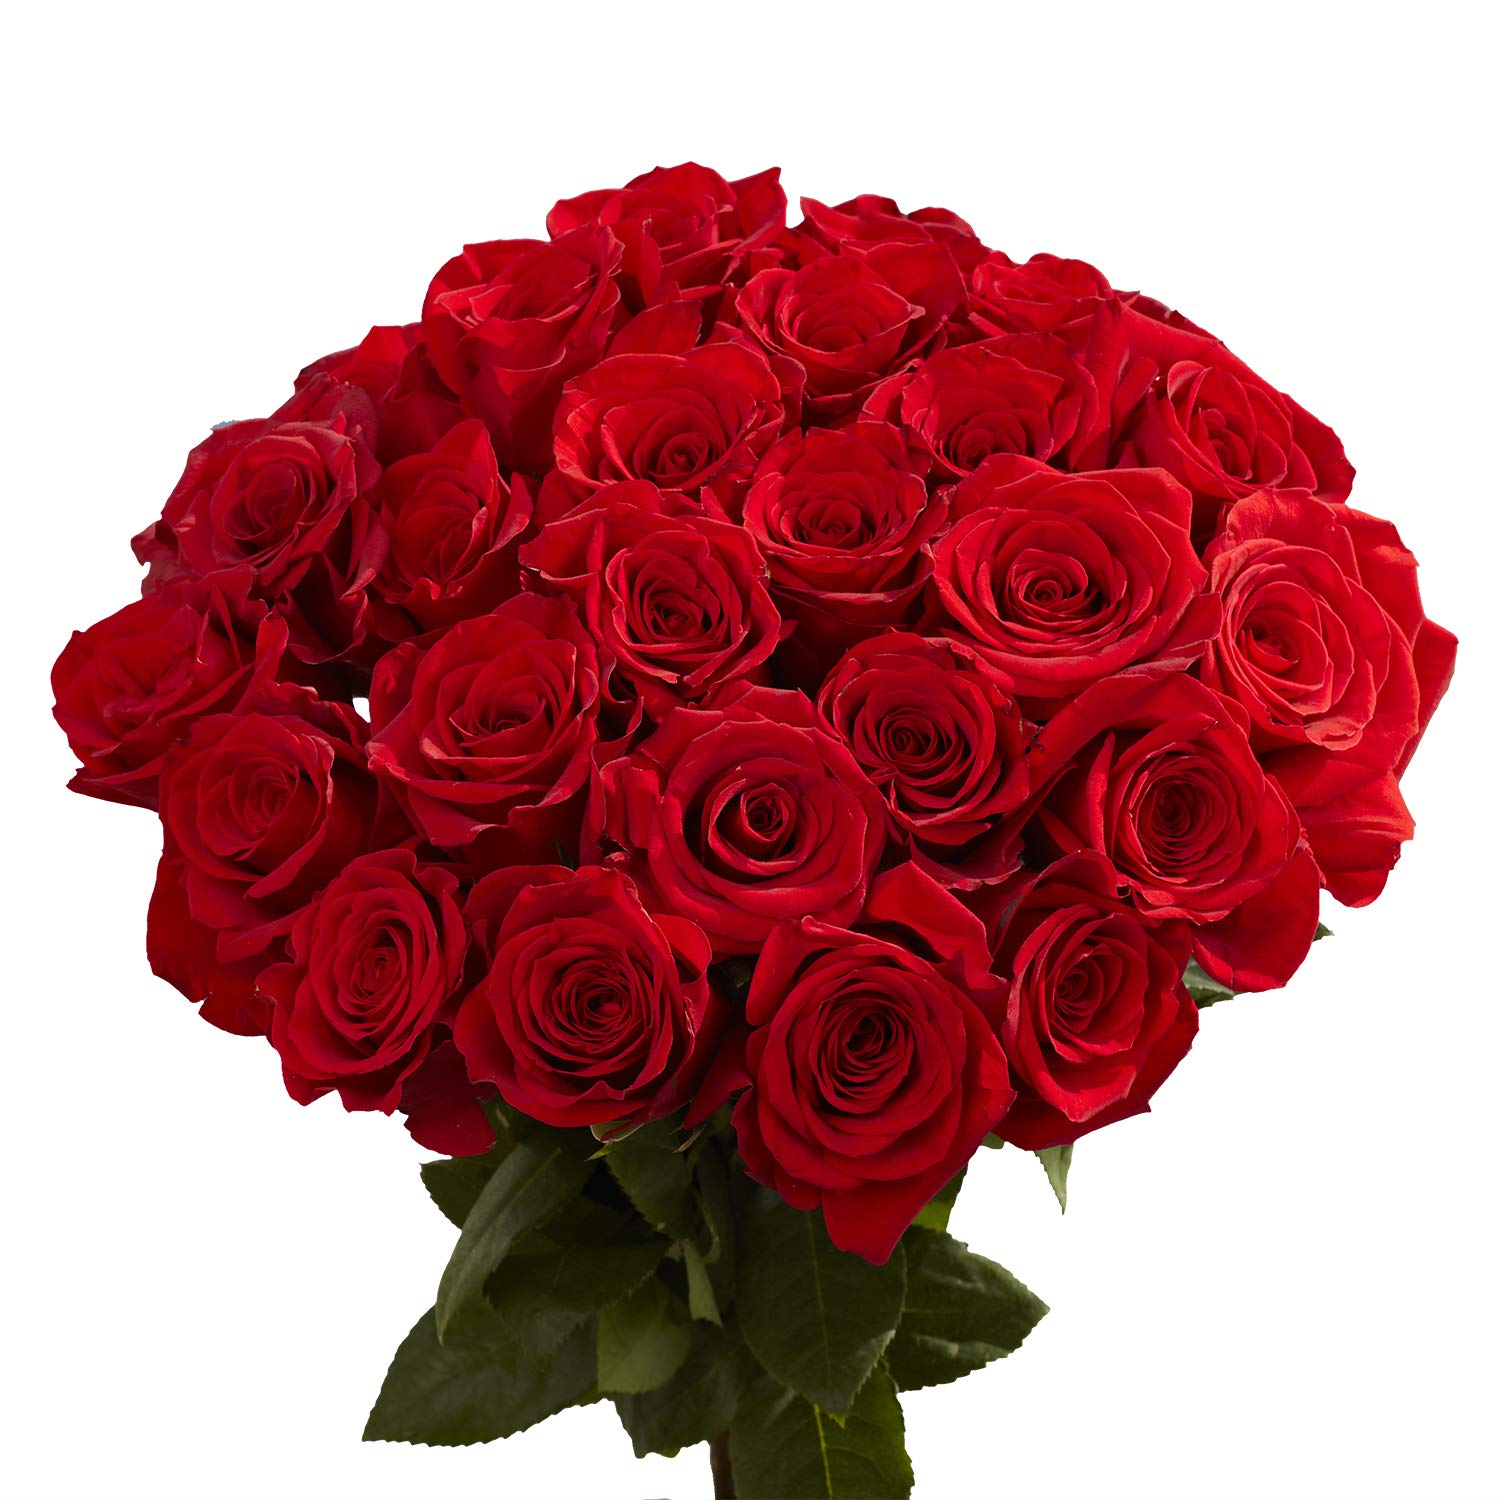 Amazon Com Globalrose Red Roses For Valentine S Day 100 Stems